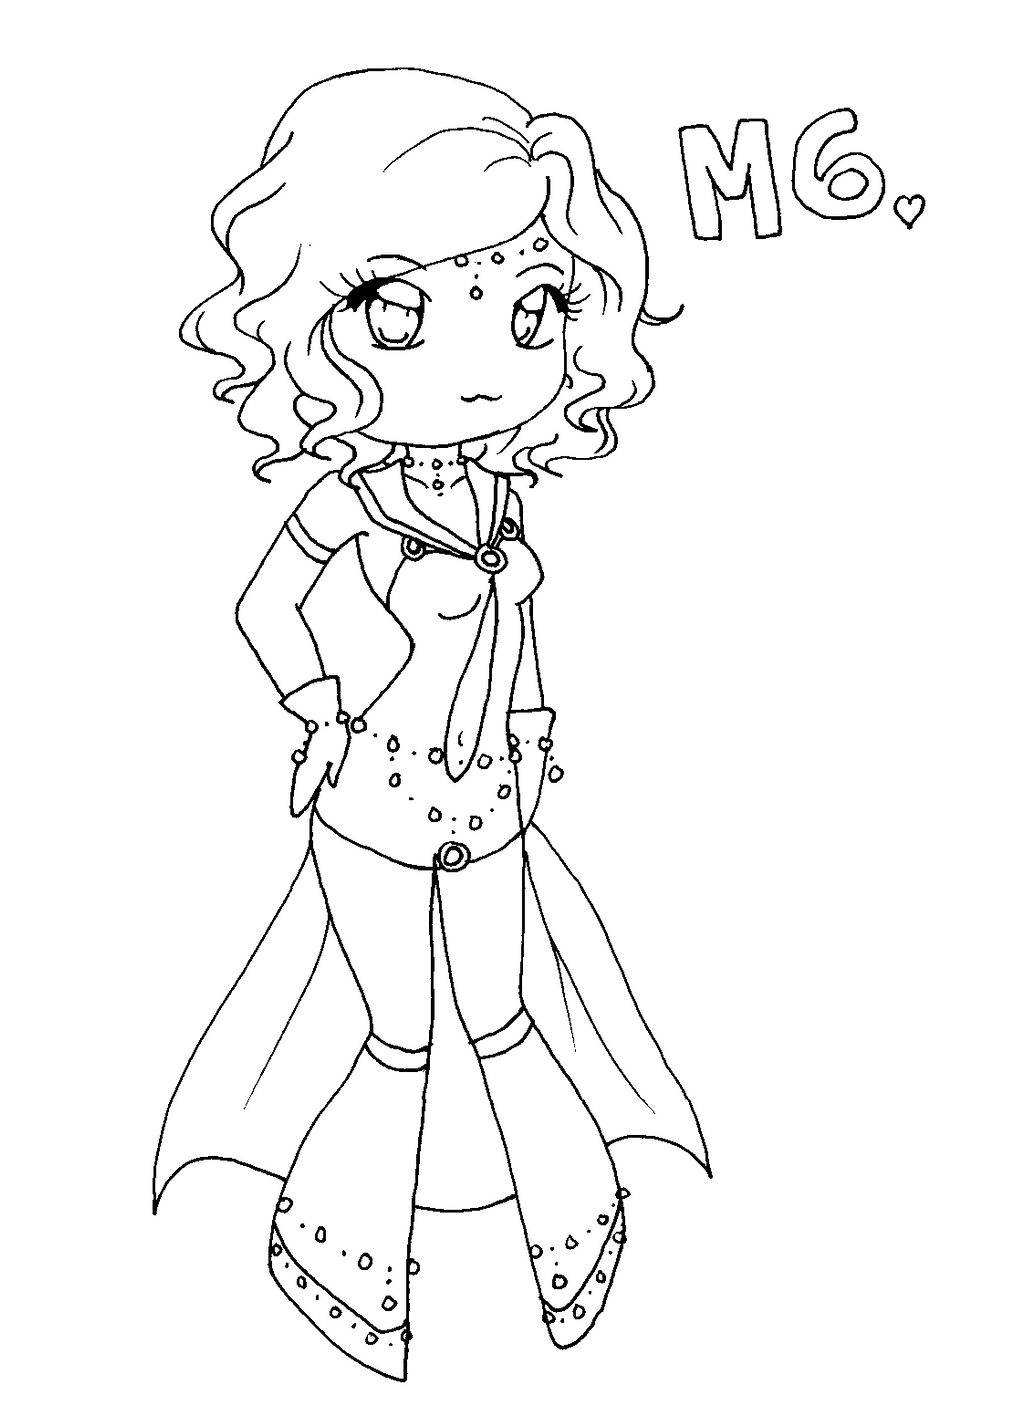 Best Sheets To Stay Cool Chibi Messier 6 Coloring Page By Pandanalove On Deviantart